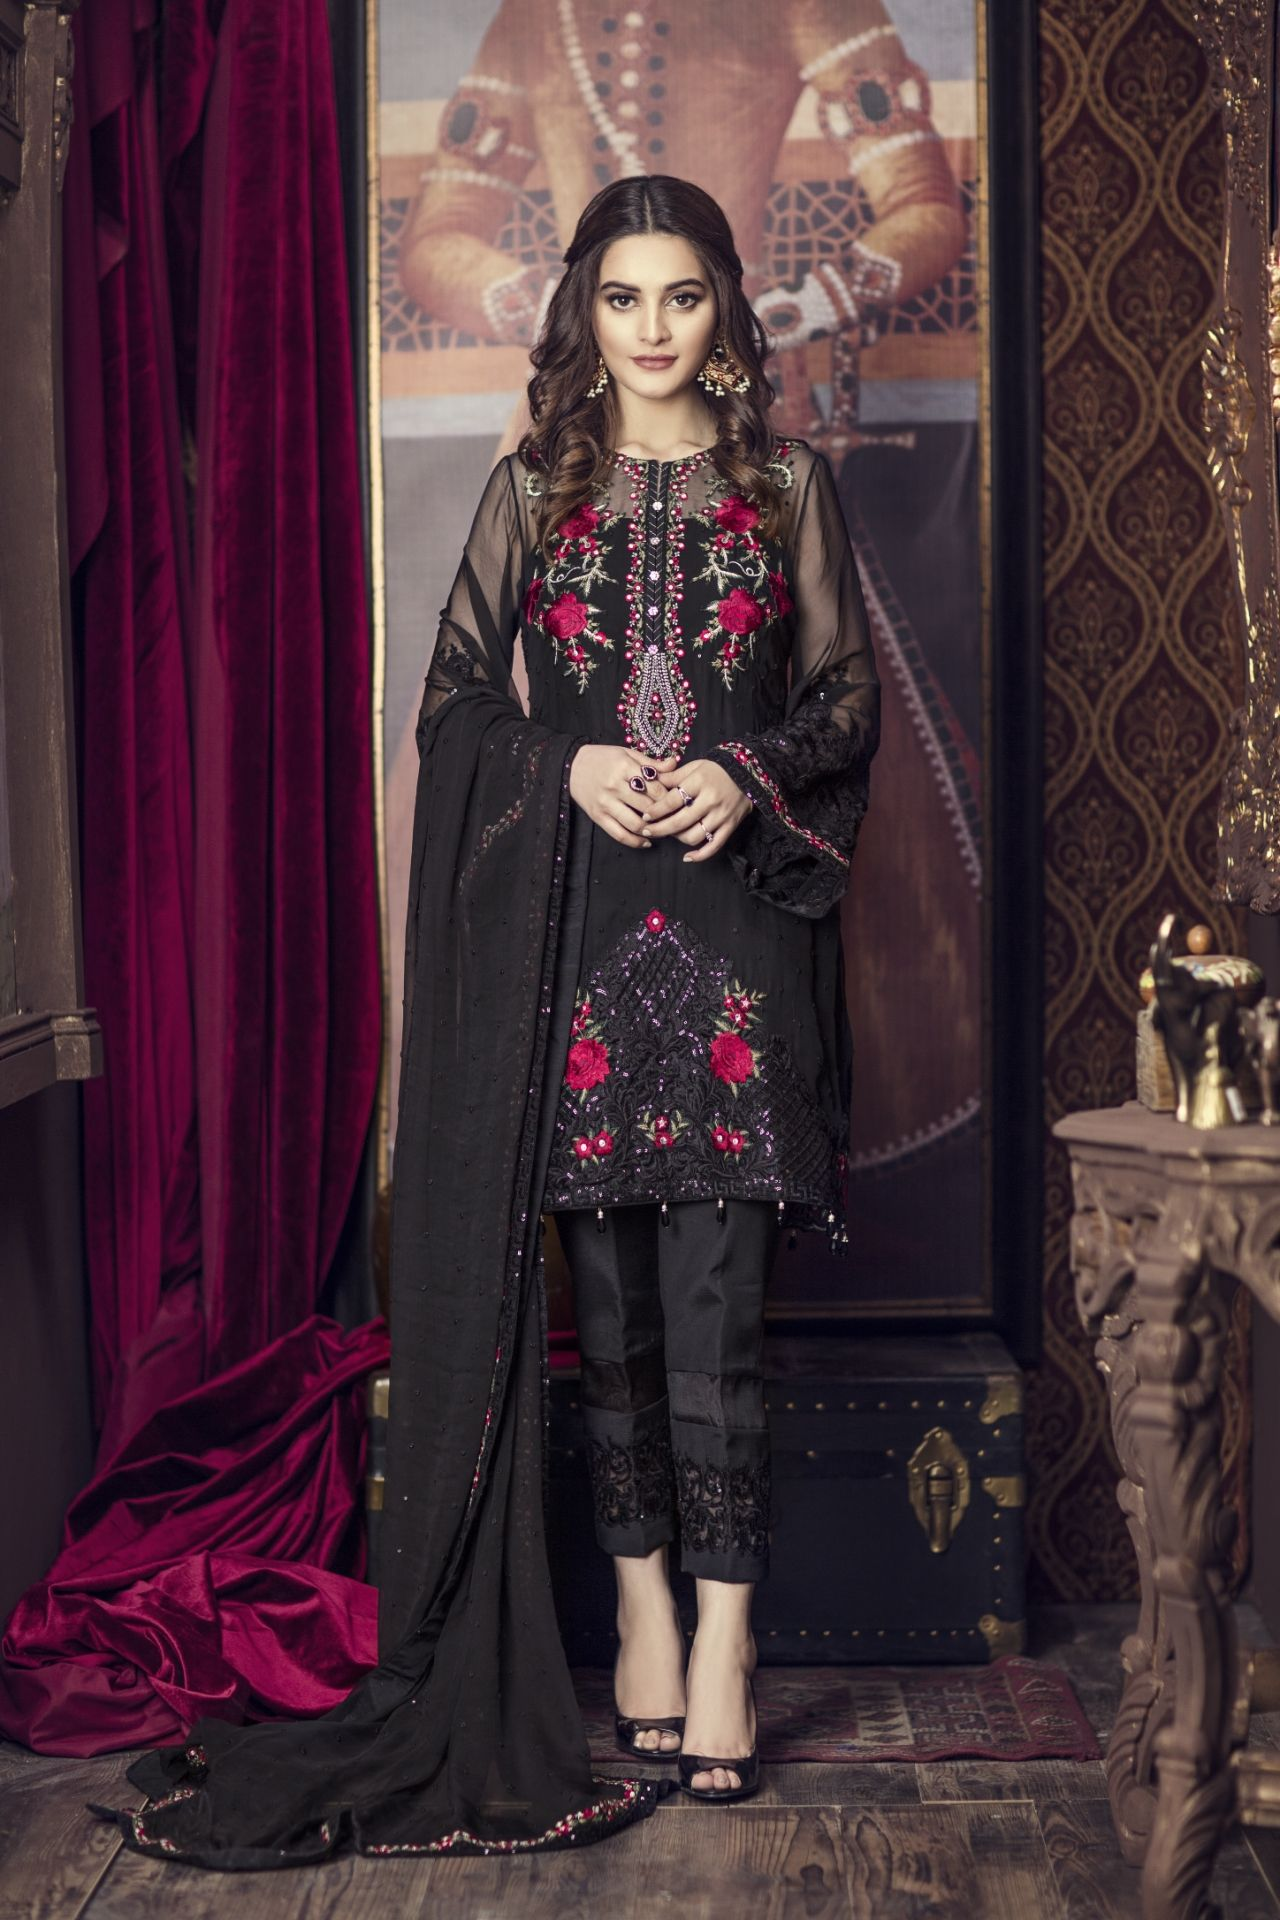 8d9f82a5a5 Imrozia Premium Embroidered Chiffon Collection 2018 | PK Vogue #partywear  #party #partyideas #partydress #chiffon #pakistanidresses